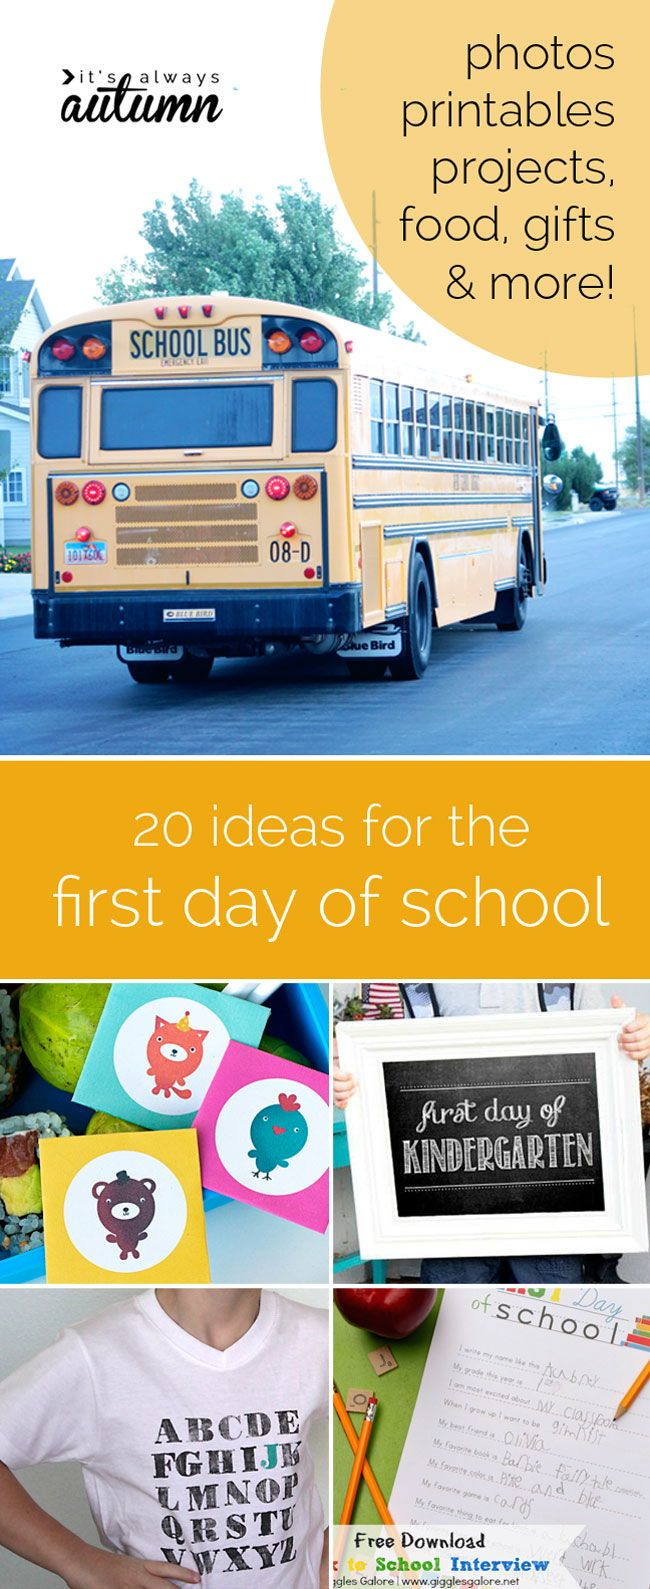 its almost time for back to school, so check out these great ideas for the first day of school - outfits, photos, food, gifts, and more!